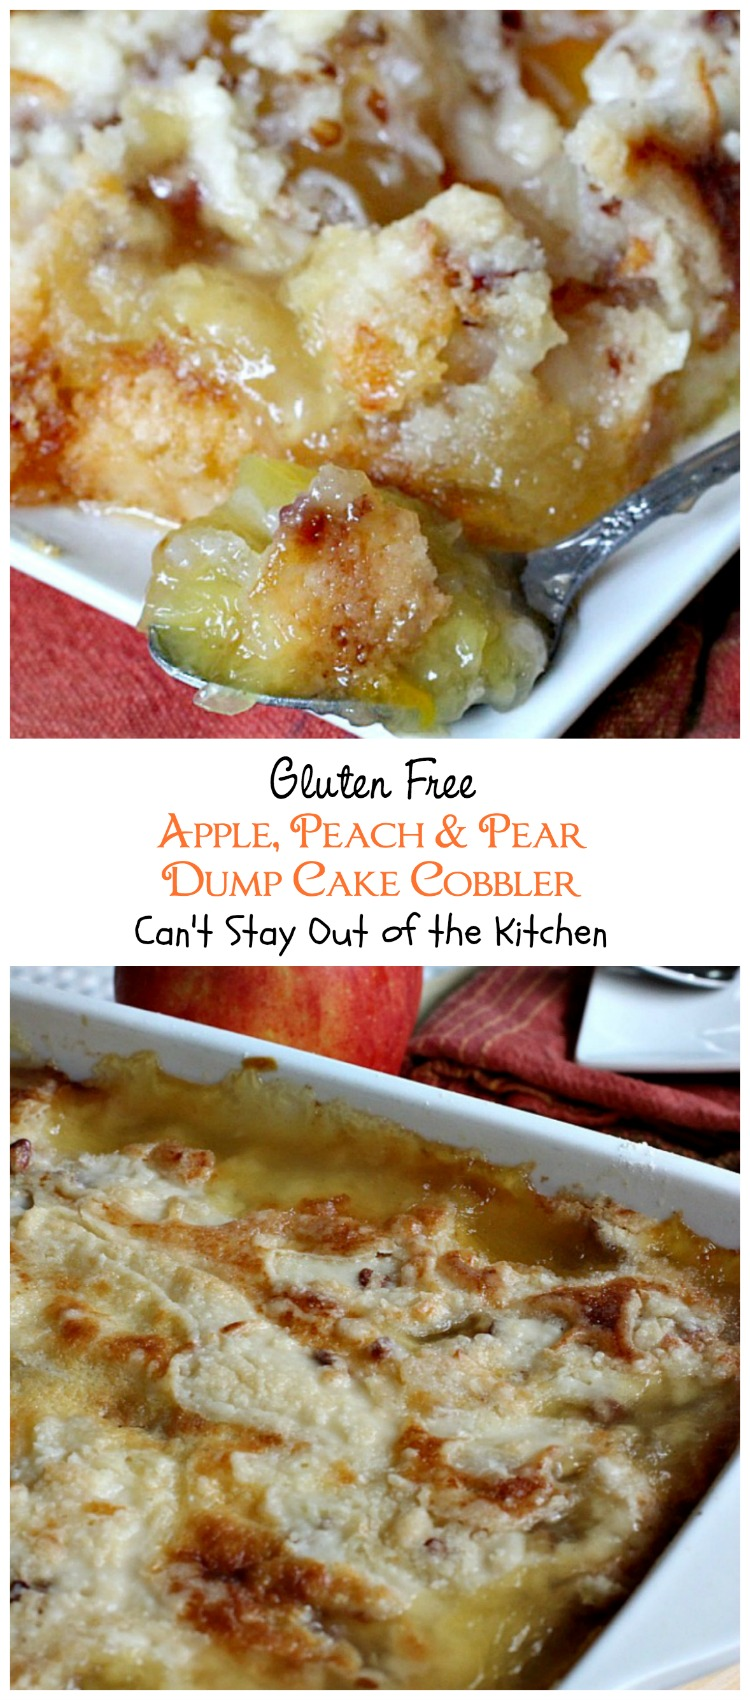 Gluten Free Apple, Peach & Pear Dump Cake Cobbler | Can't Stay Out of...